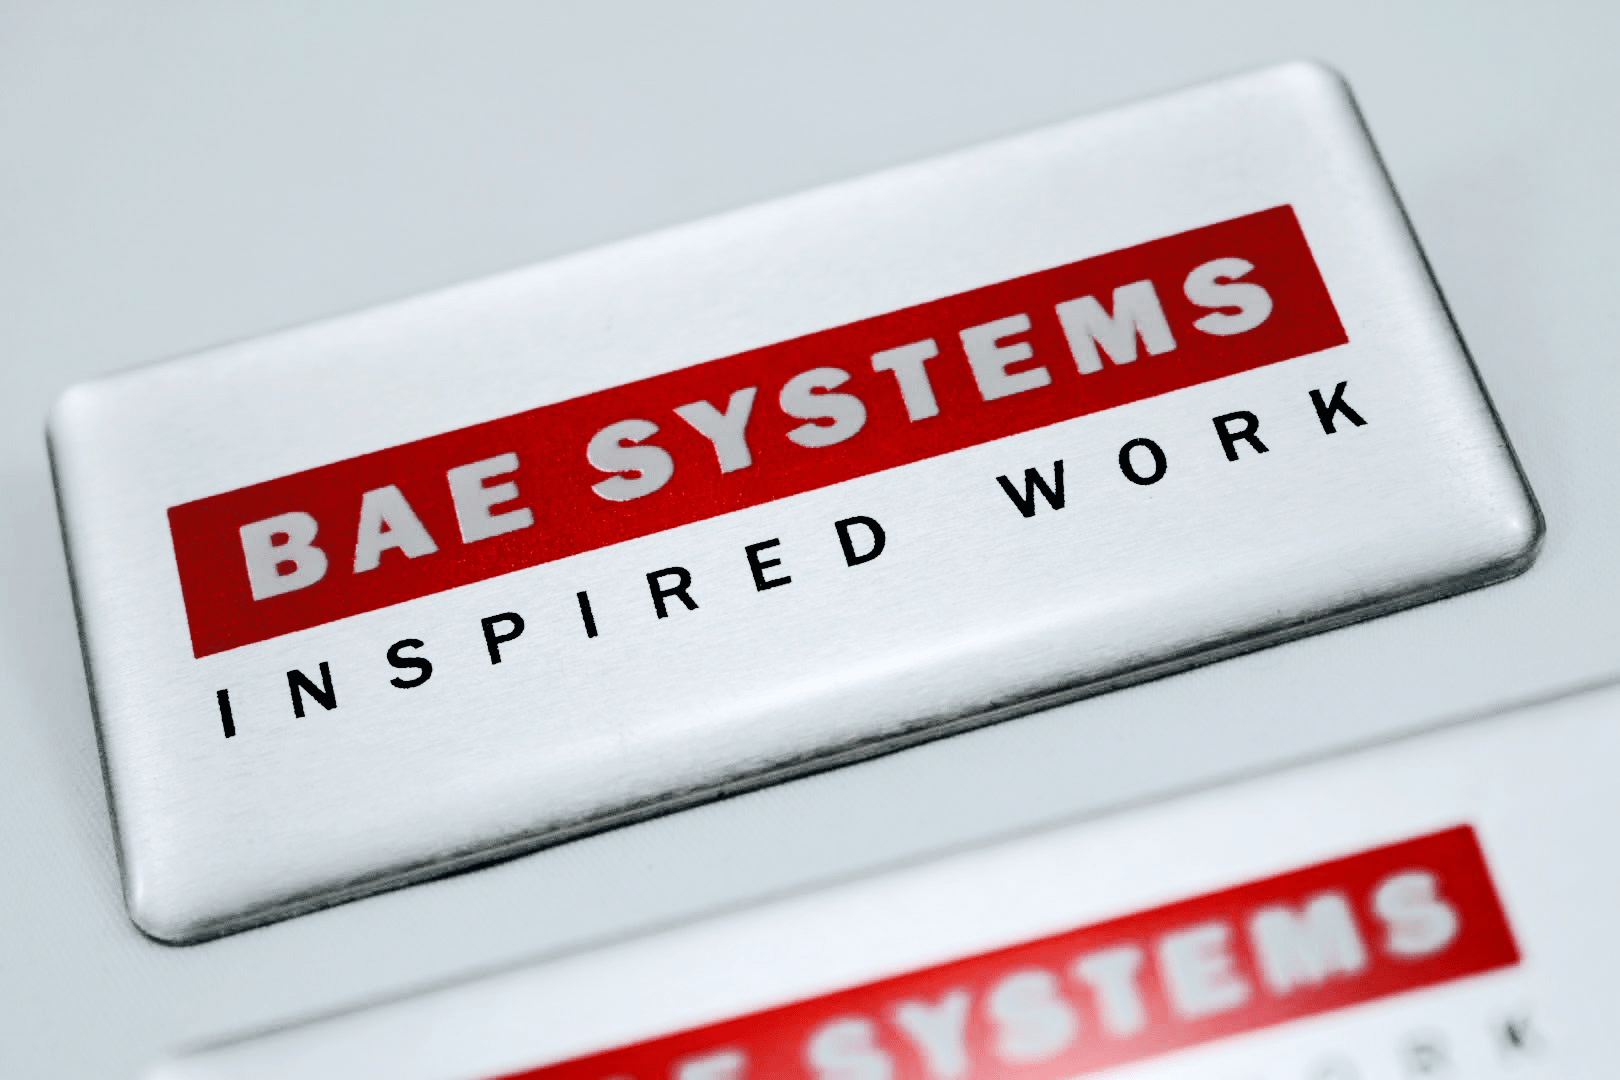 Promotional Digitally Printed Metal Name Badges, Printed and Delivered to BAE Systems.